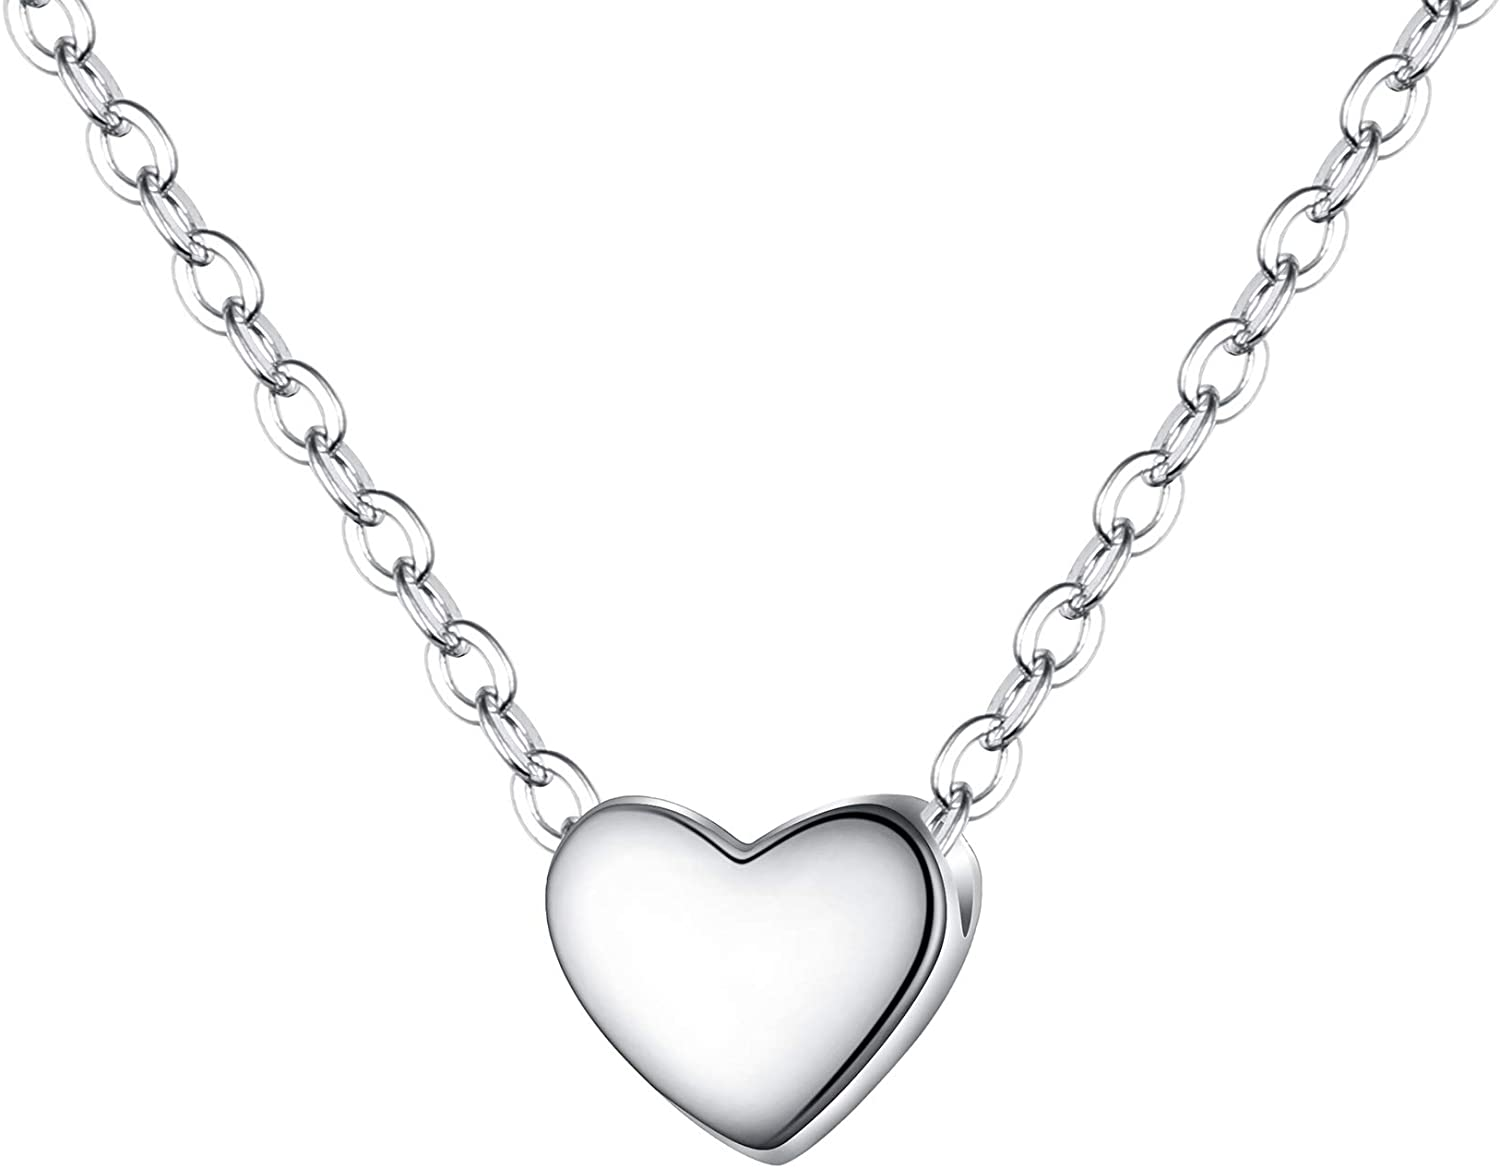 EVER FAITH Jewelry Gift 925 Sterling Silver Tiny Triangle Moon Star Dainty Heart Pendant Choker Necklace for Women